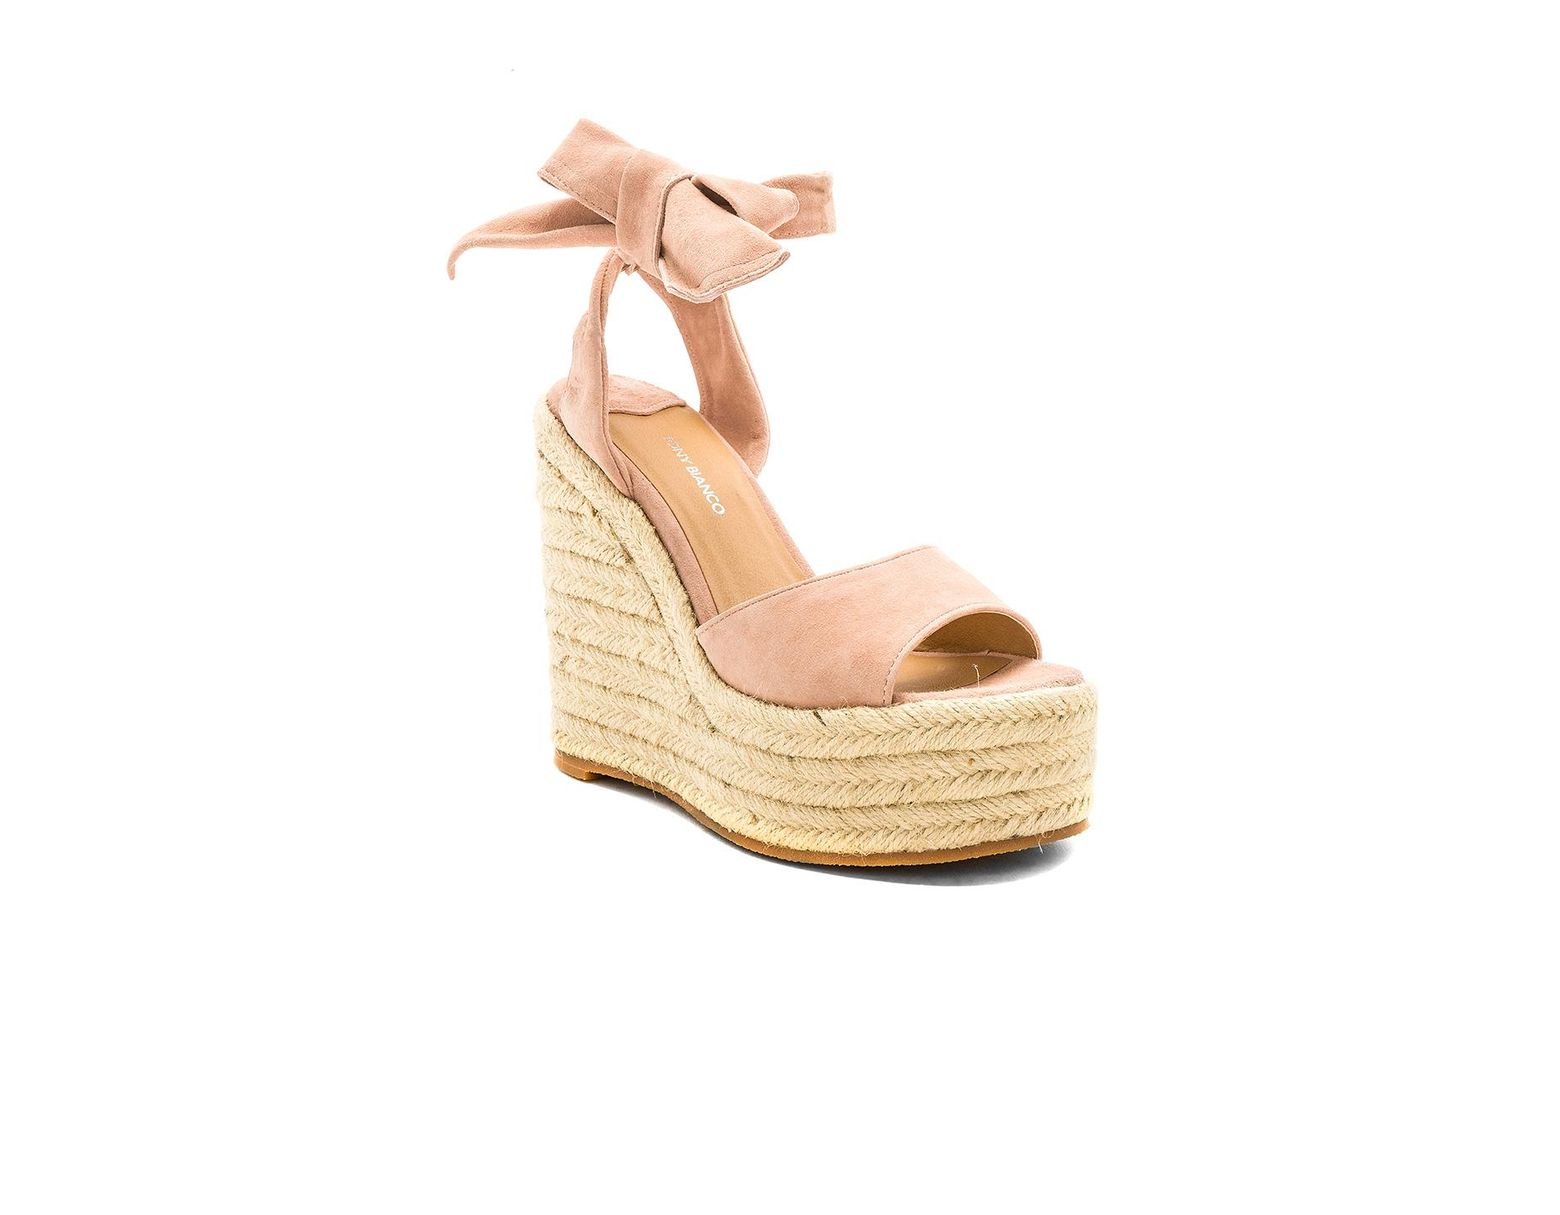 fac7cd7d41d5 Lyst - Tony Bianco Barca Wedge in Natural